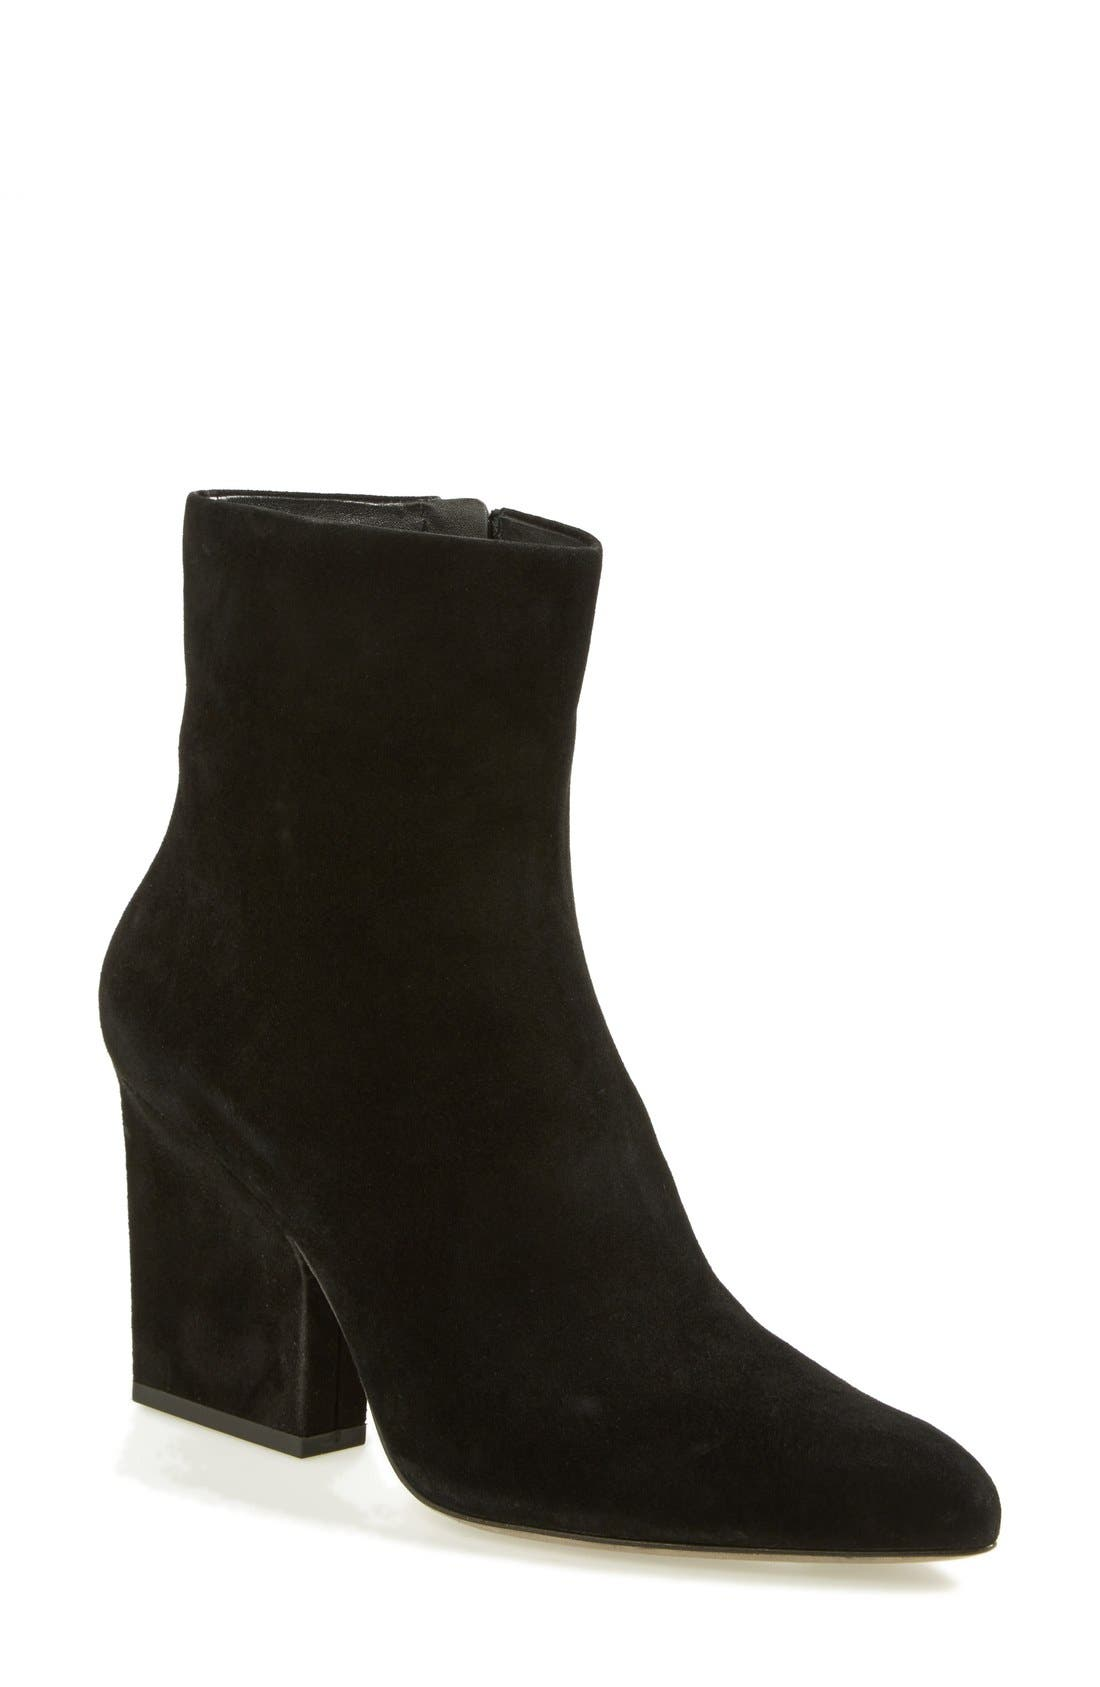 Alternate Image 1 Selected - Alexander Wang 'Sunniva' Ankle Bootie (Women)